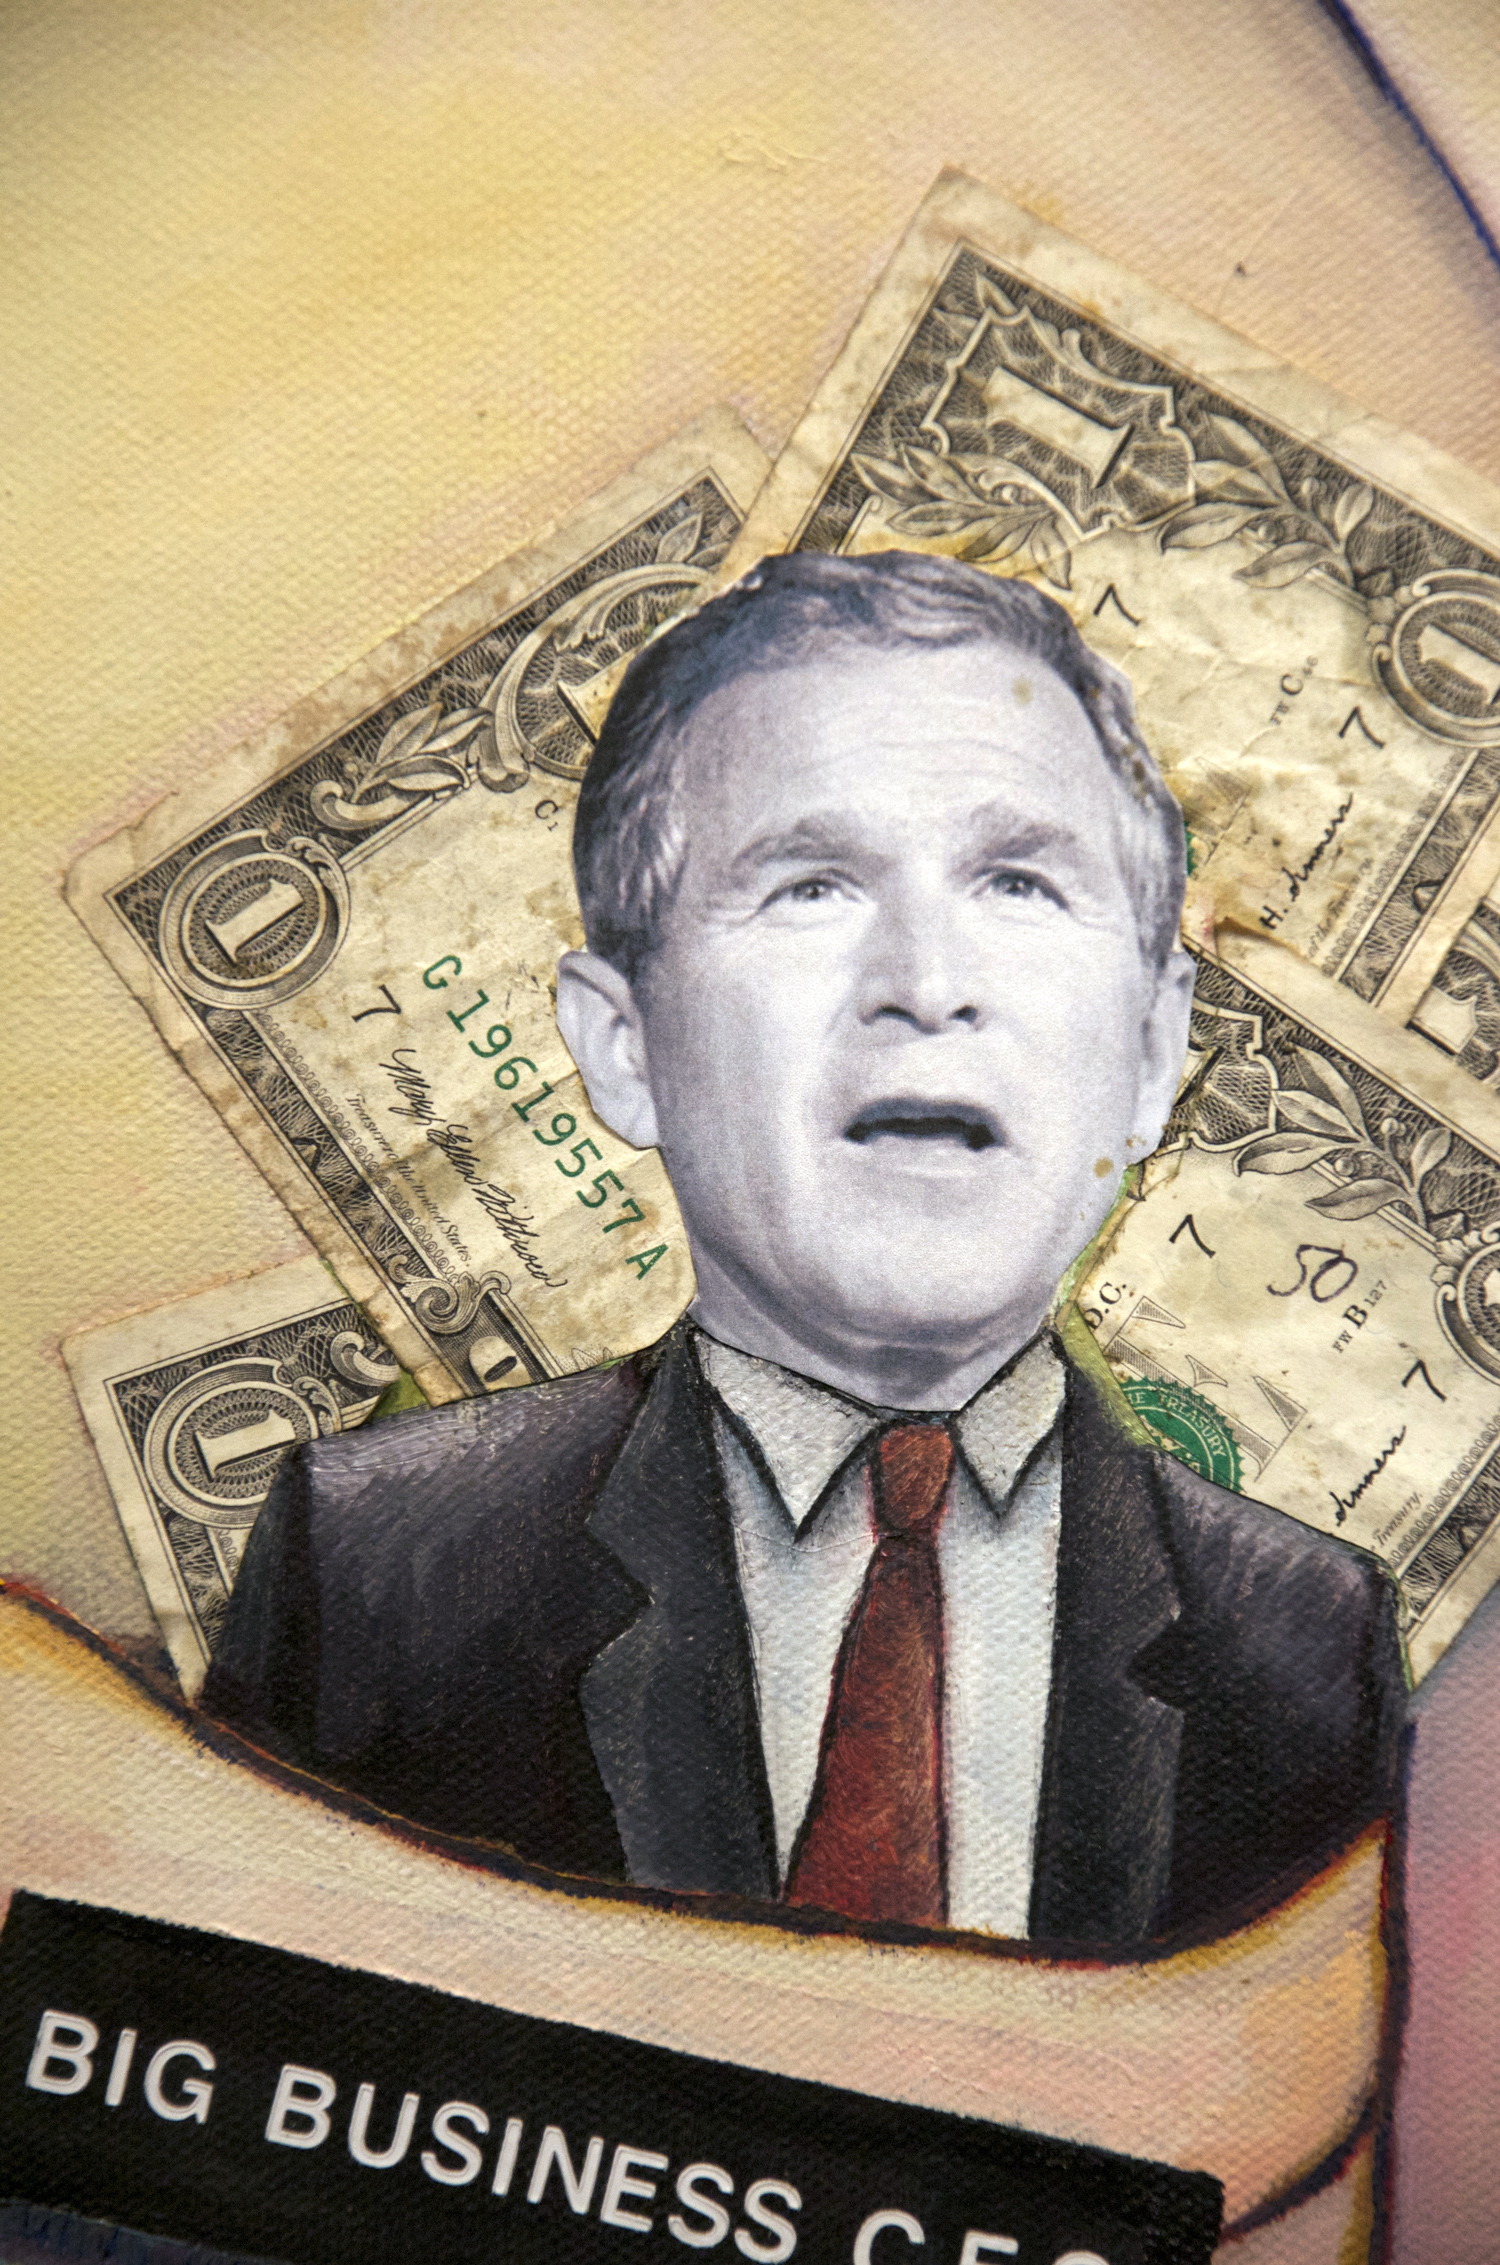 Best Seat In The House oil painting (GW Bush political satire), by Billy Reiter